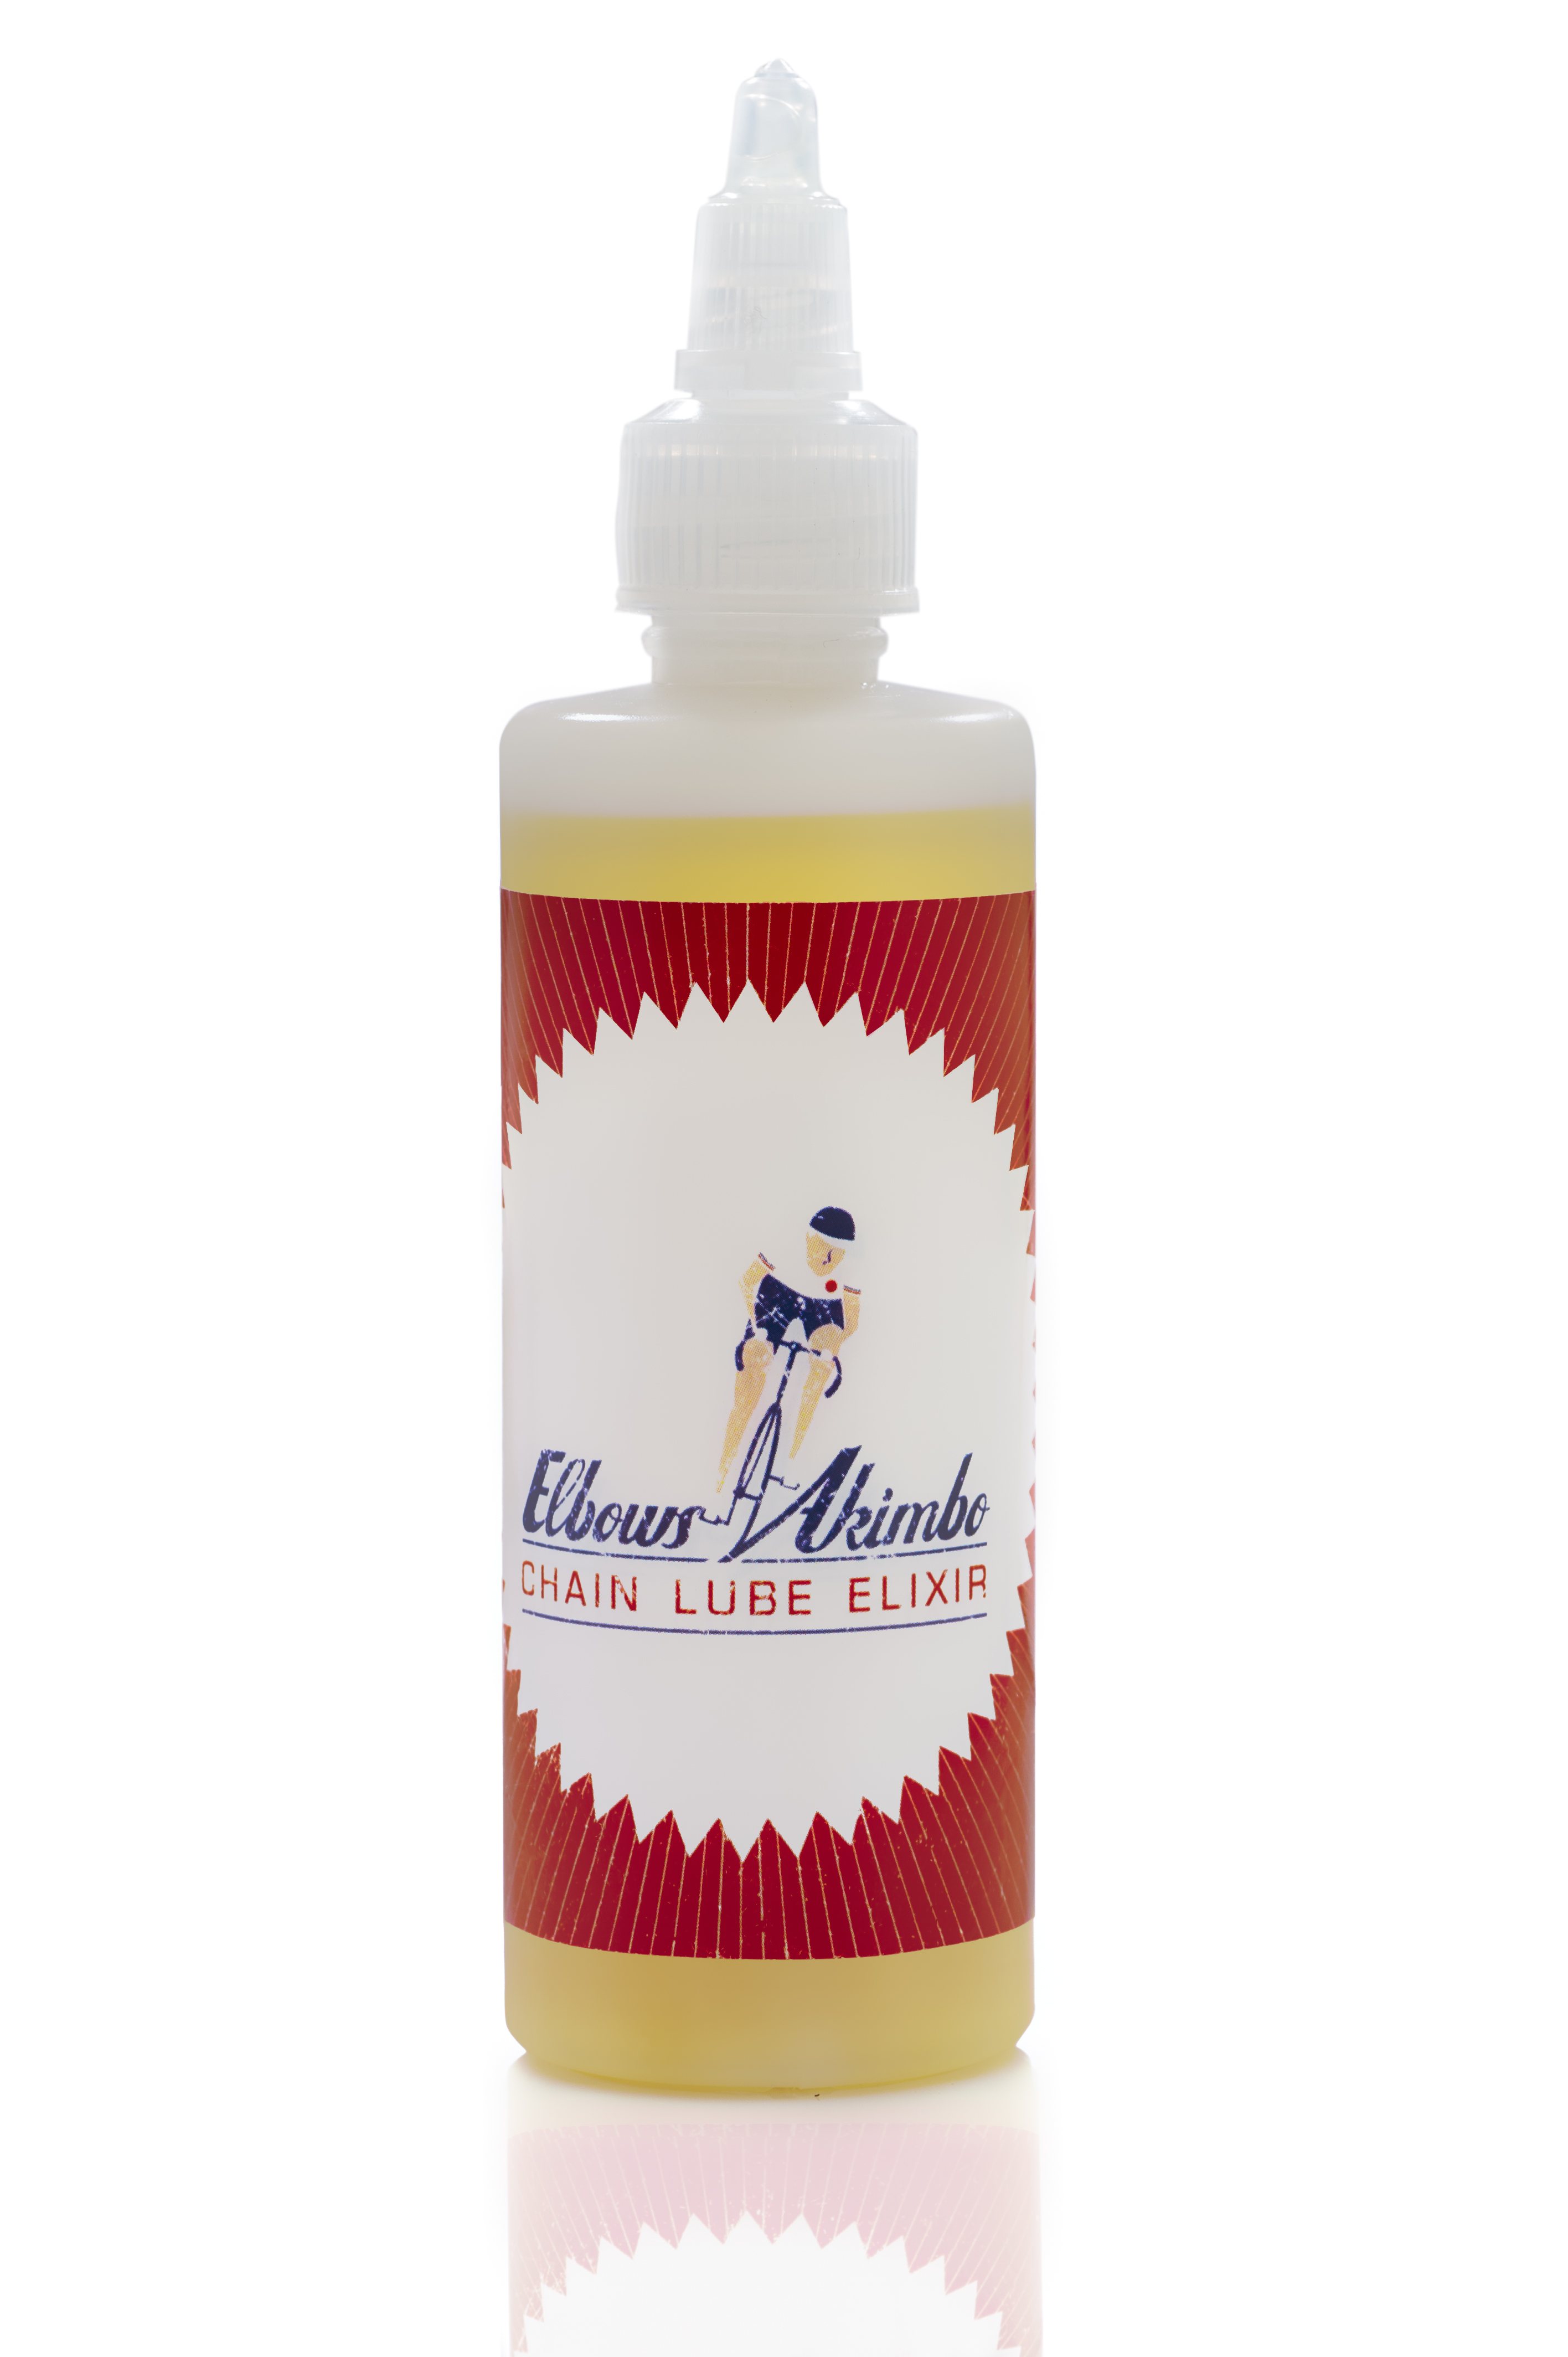 Elbows Akimbo Bike Chain Lube Elixir